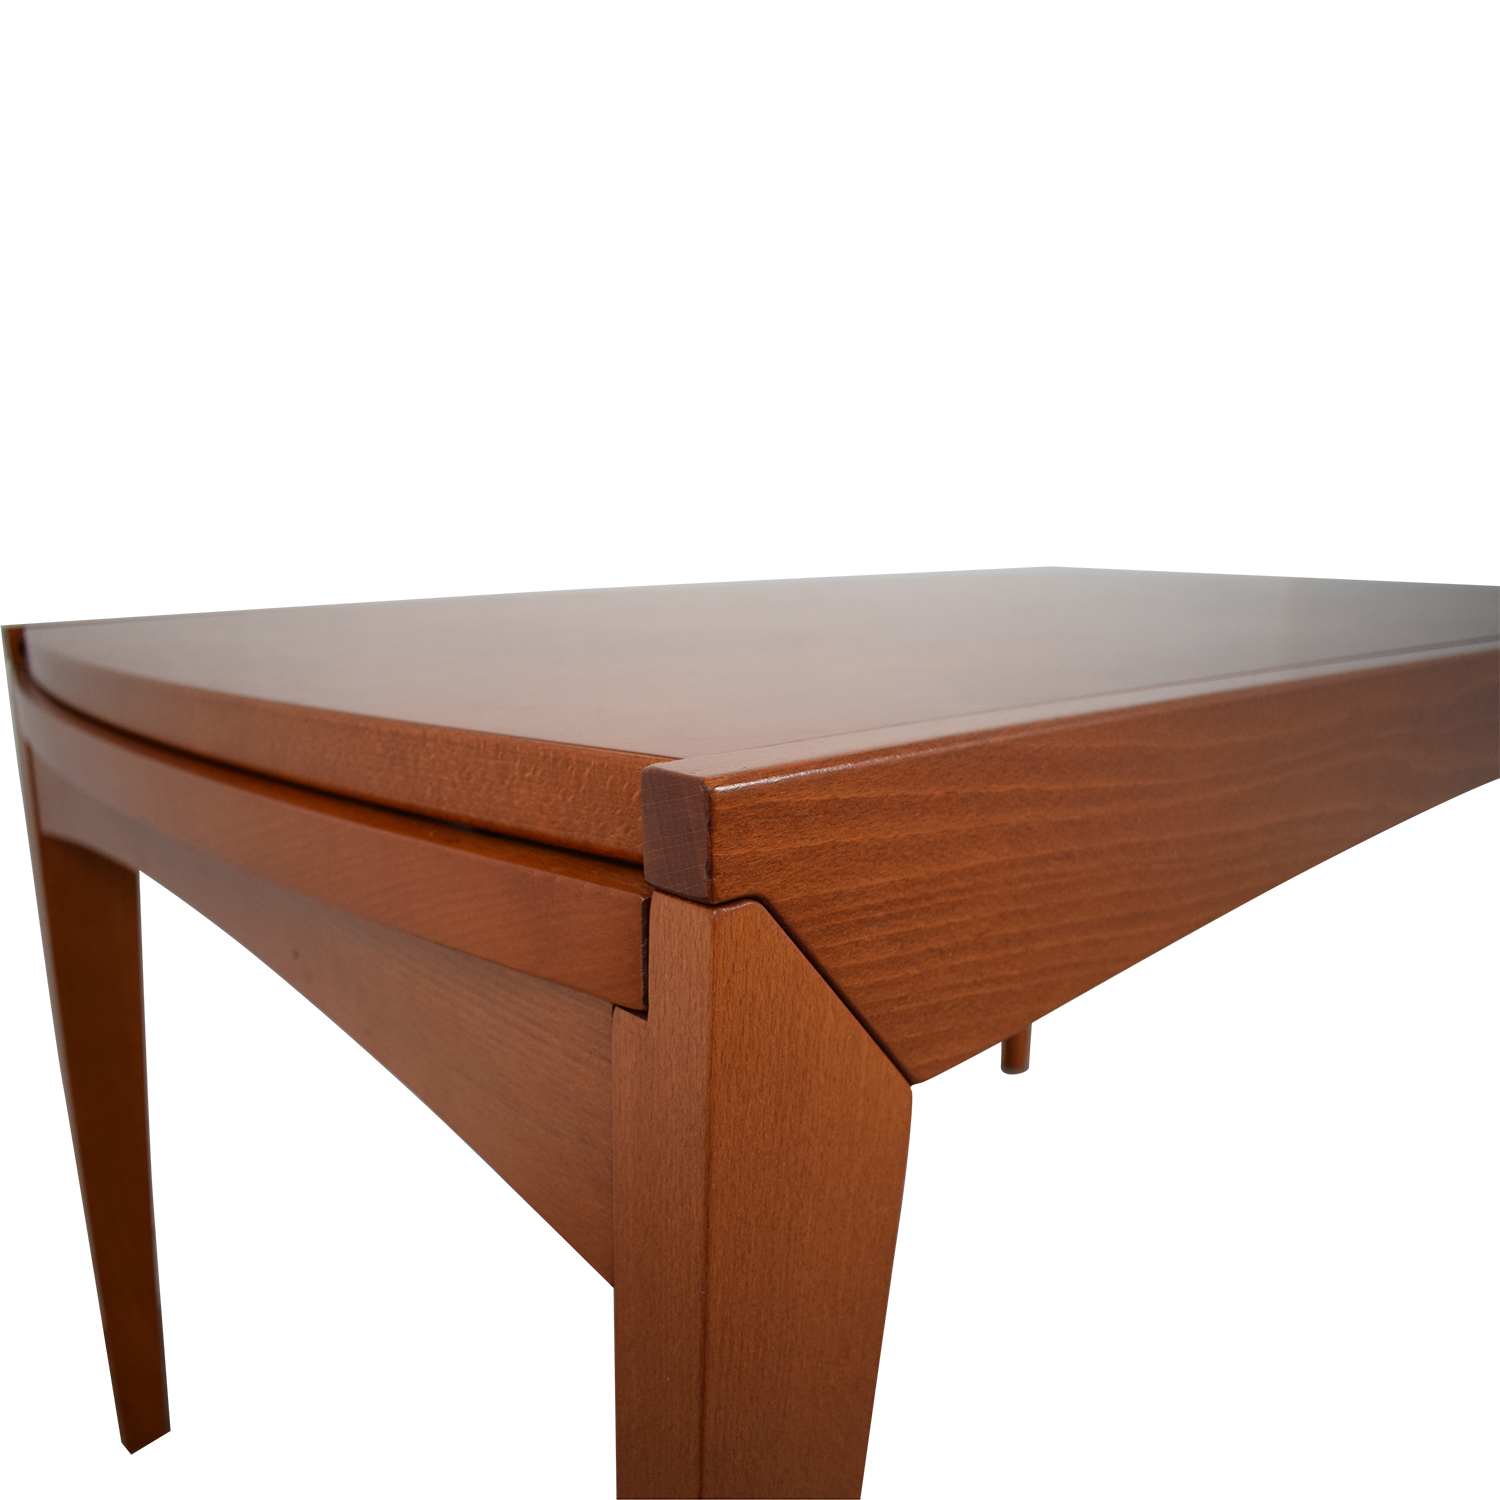 Calligaris Refectory Dining Table / Dinner Tables